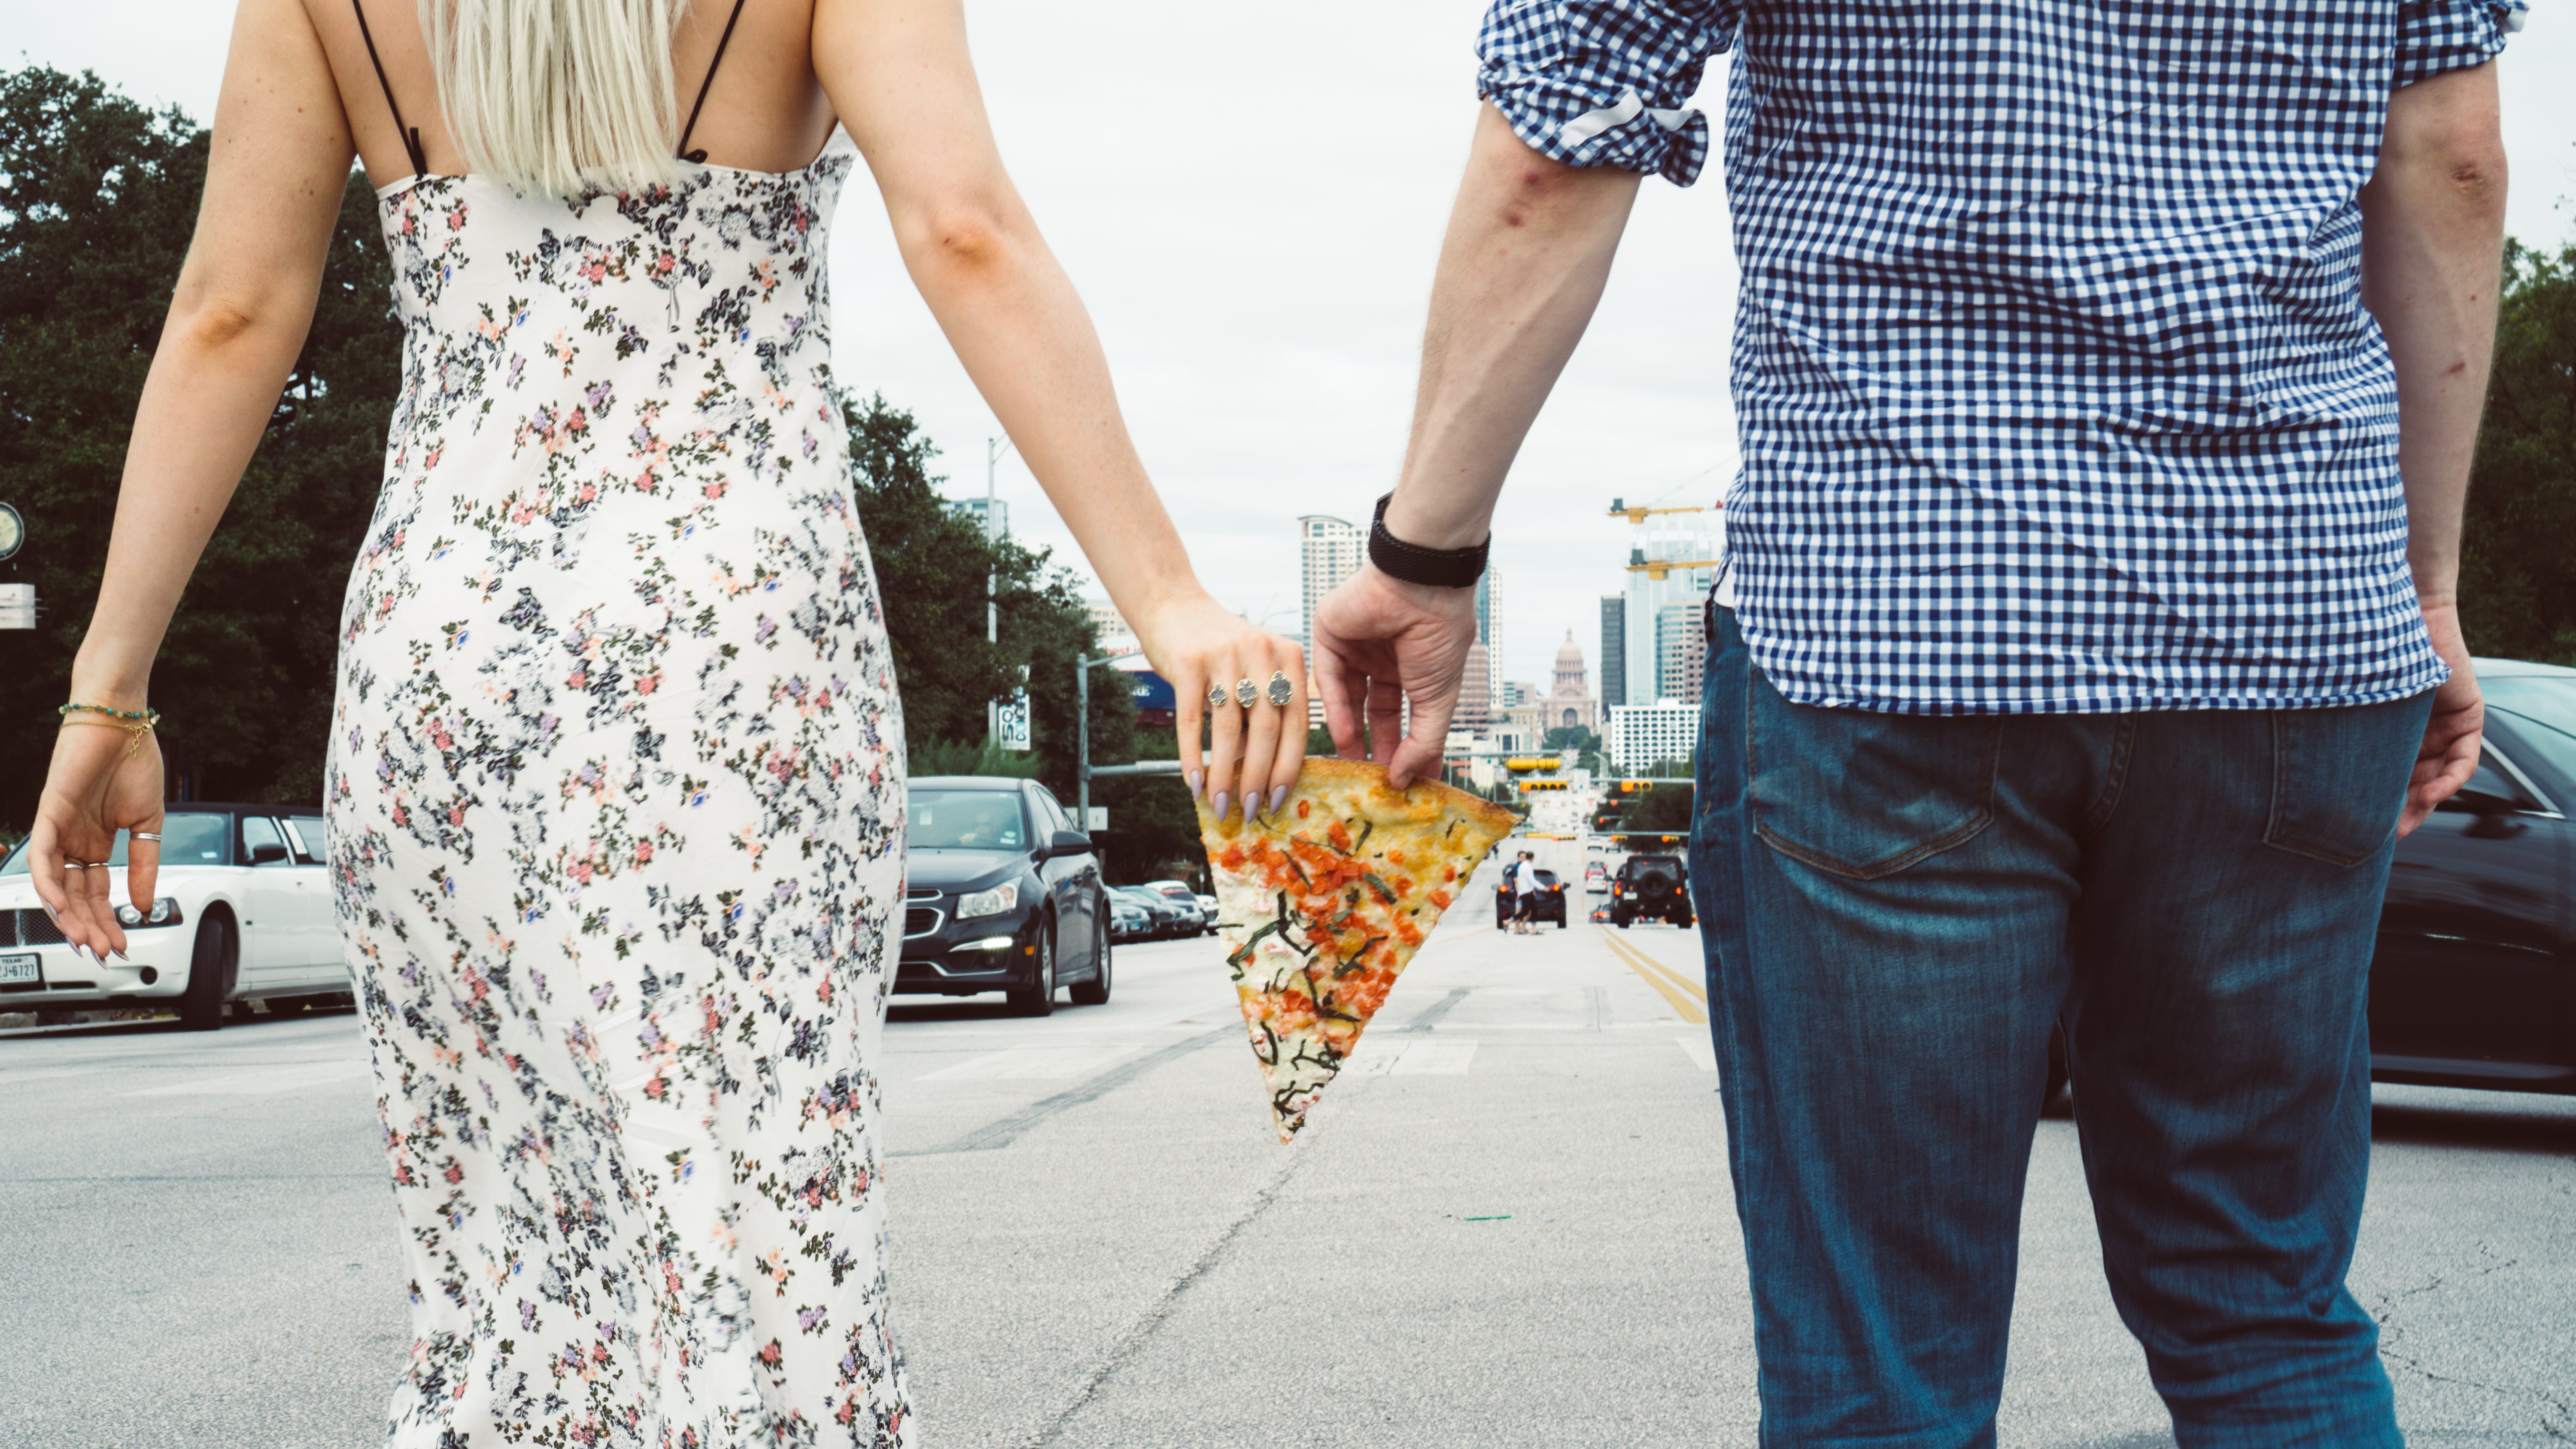 Man and woman holding pizza between their hands